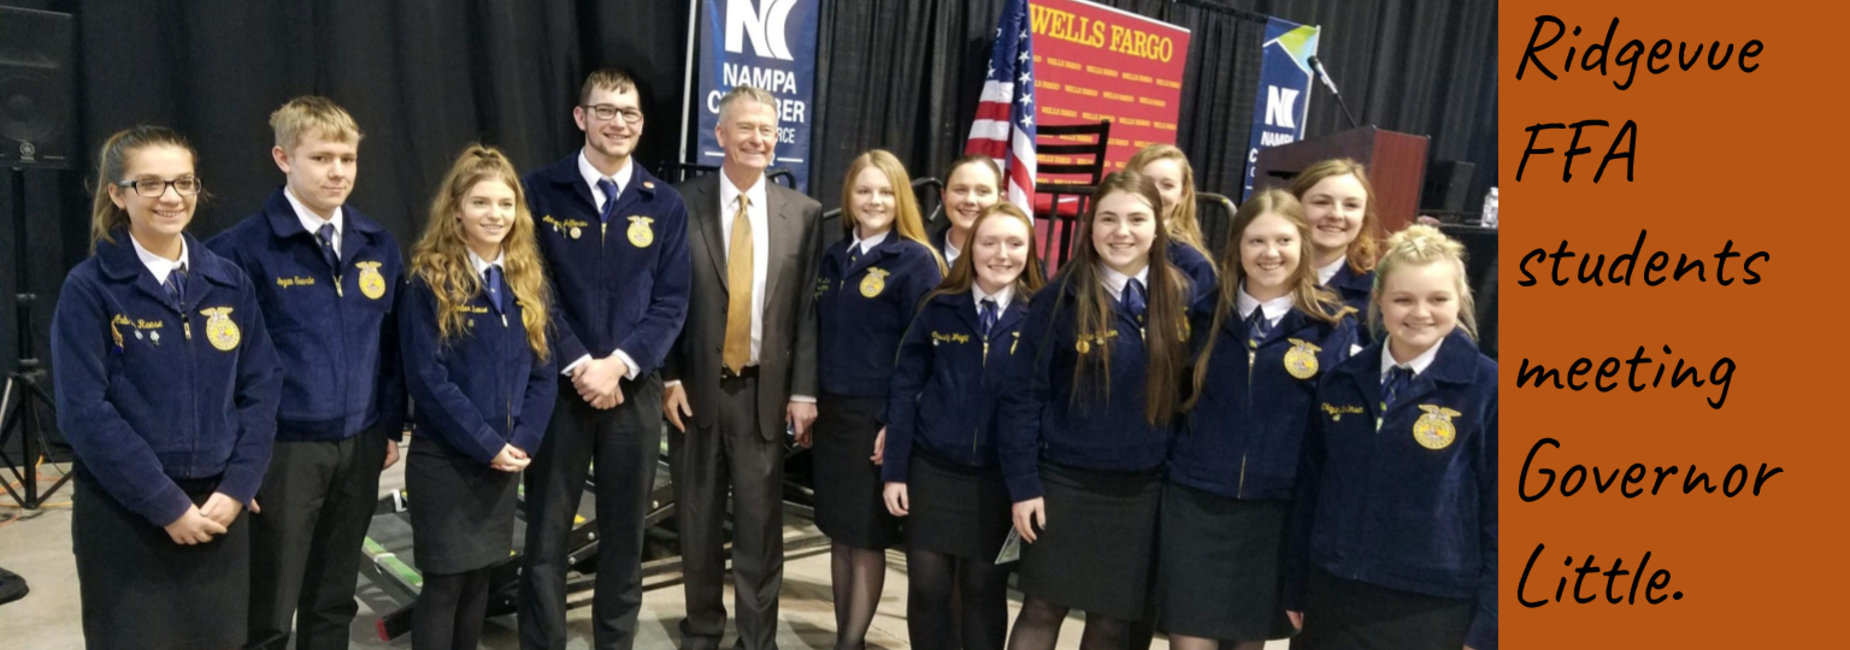 FFA Students meeting Governor Little